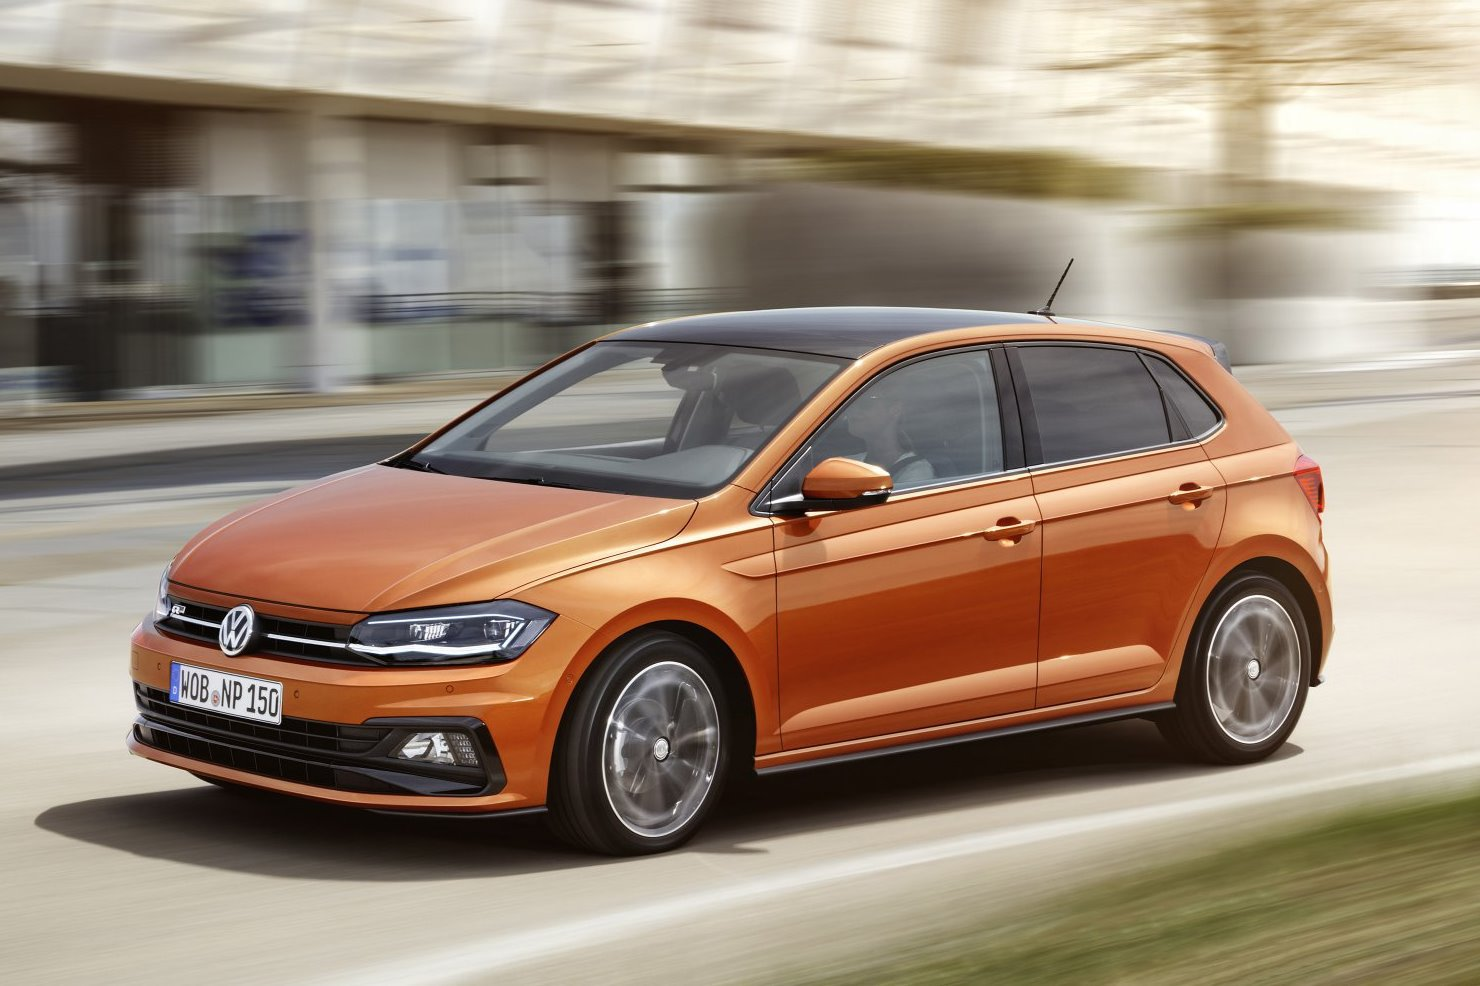 2018 Volkswagen Polo Front Side on road